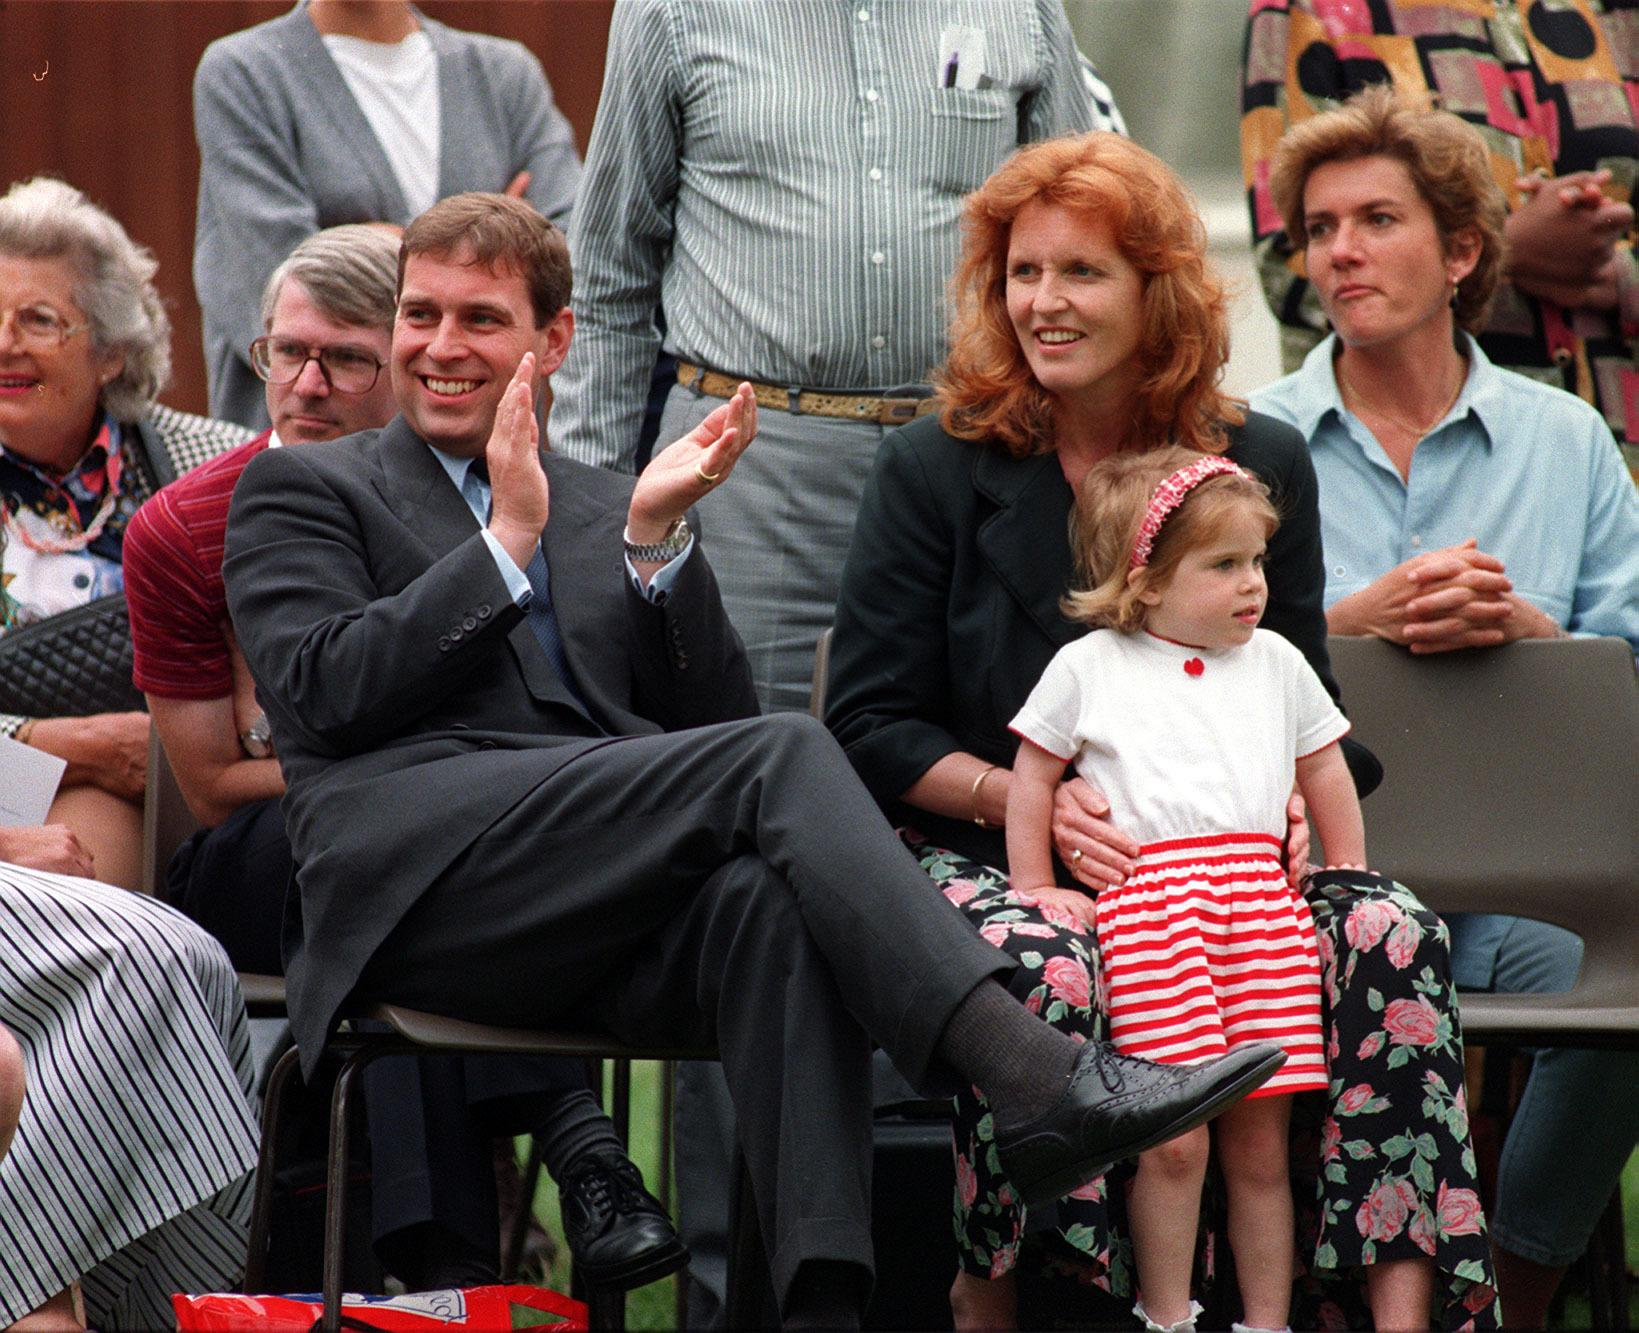 The Duke and Duchess of York and their youngest daughter Princess Eugenie enjoy the events of sports day at Upton House School, Windsor which is attended by their other daughter Princess Beatrice.